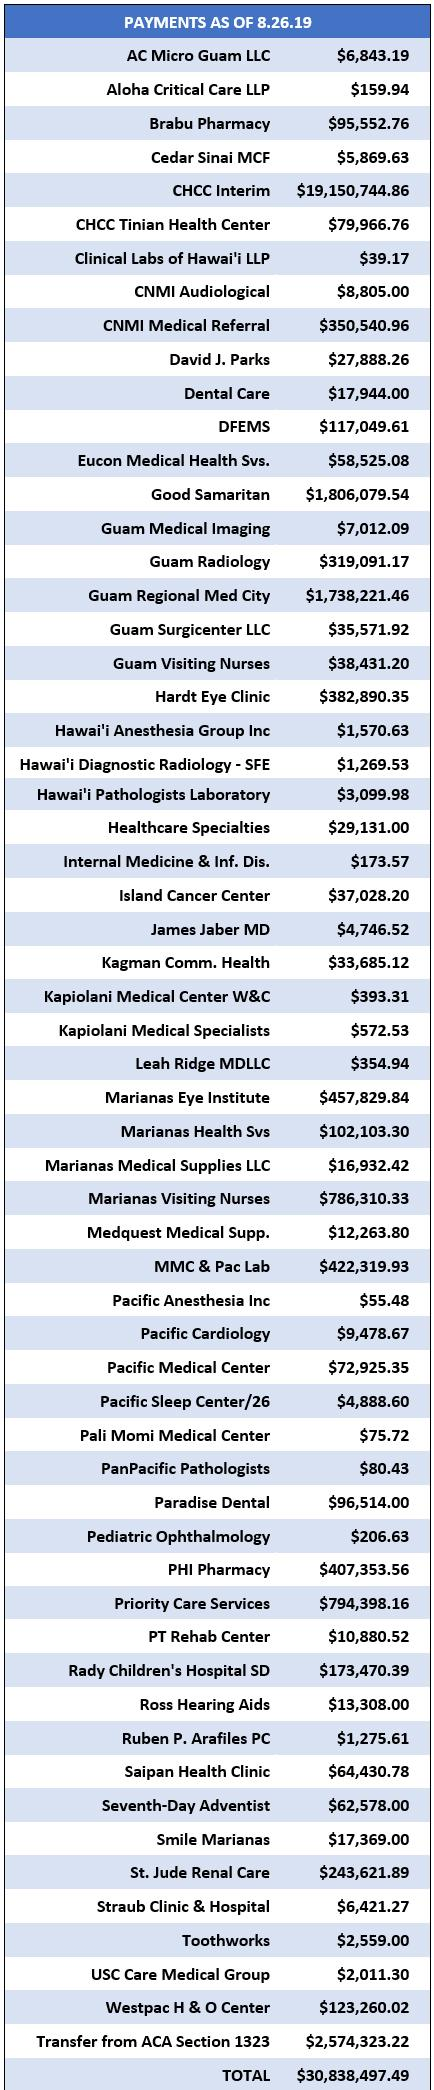 $30.8m paid from Medicaid disaster